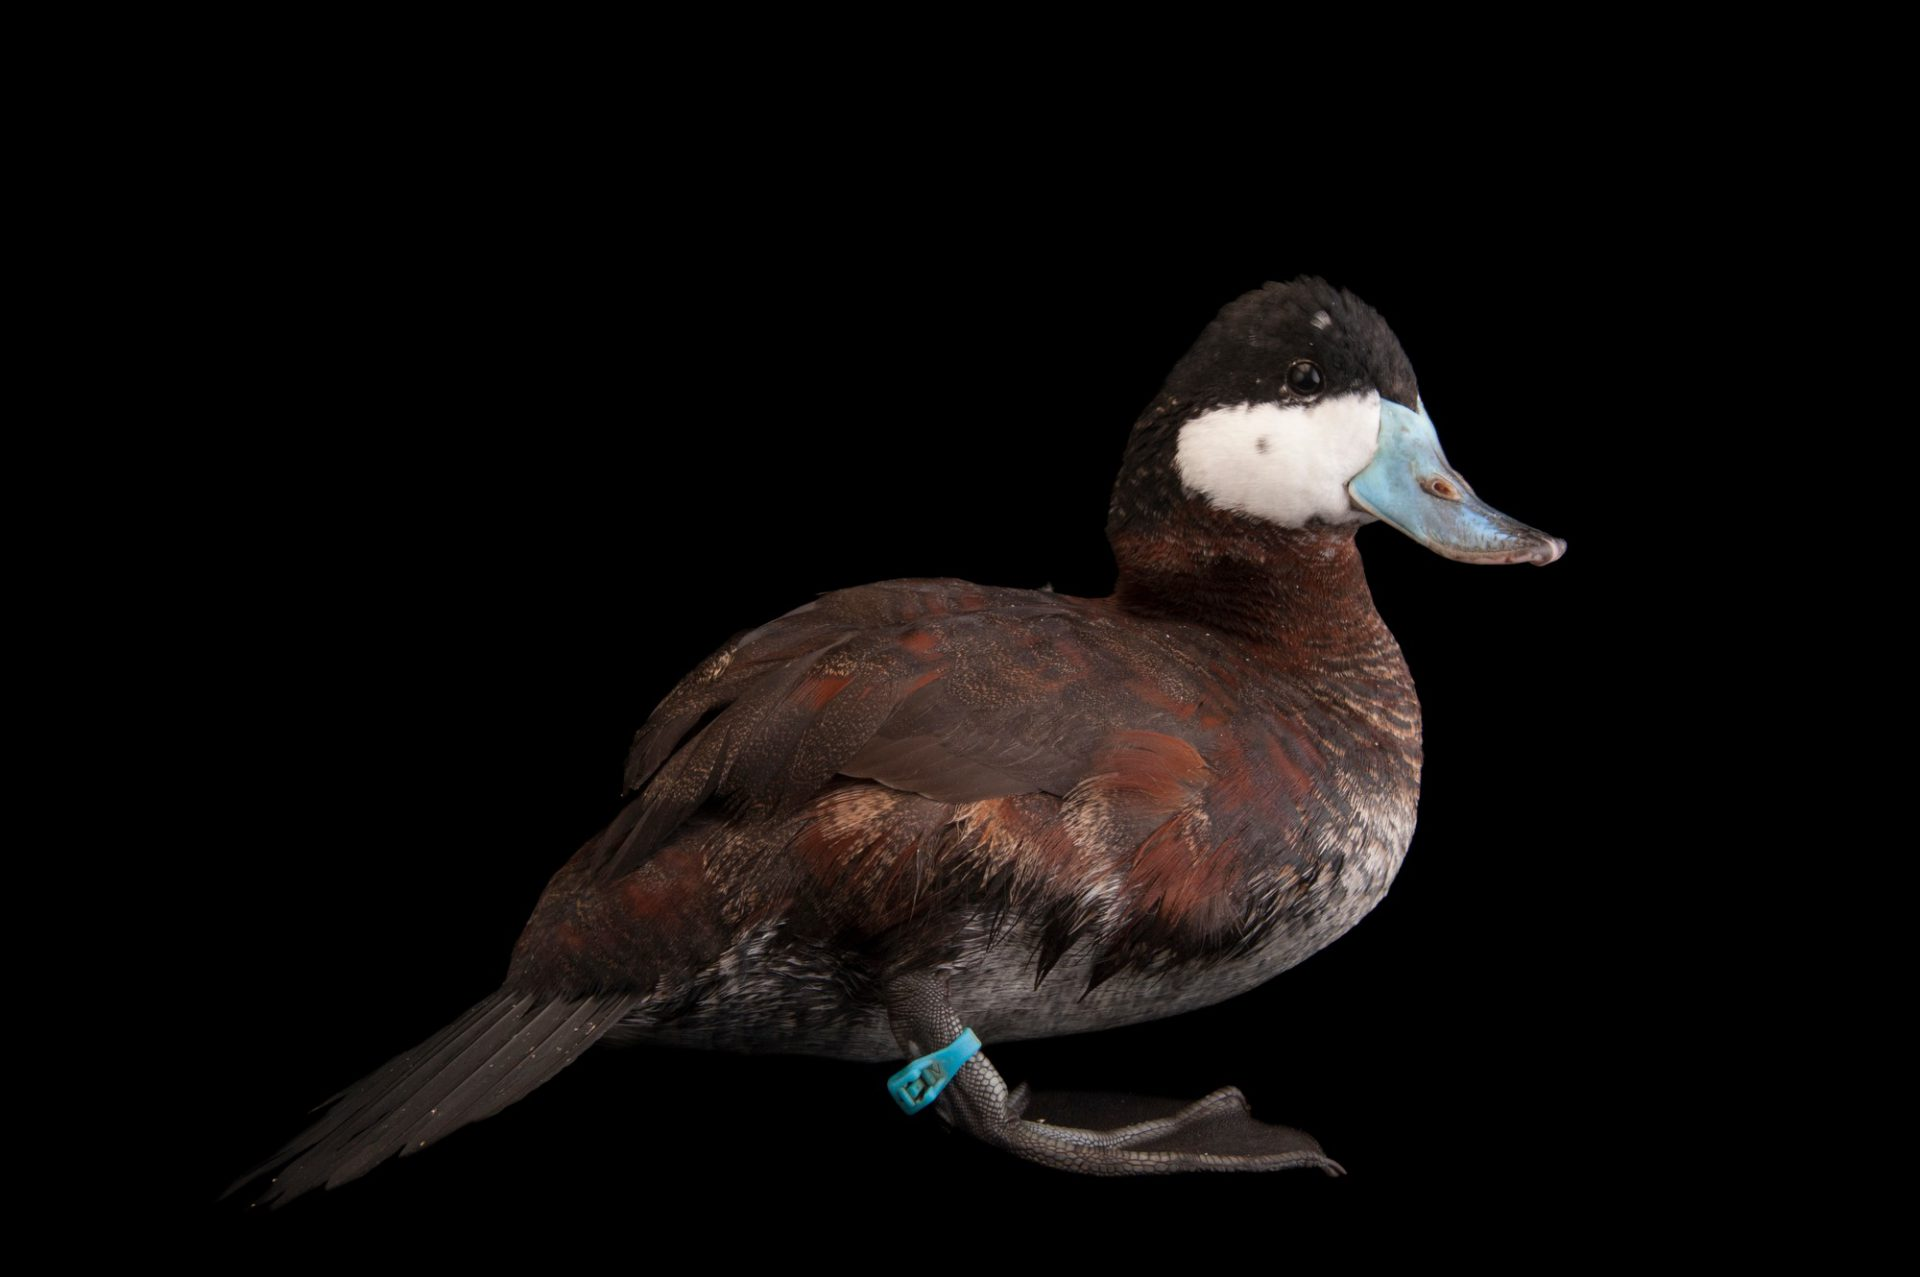 Picture of a North American ruddy duck (Oxyura jamaicensis jamaicensis) at the Columbus Zoo.